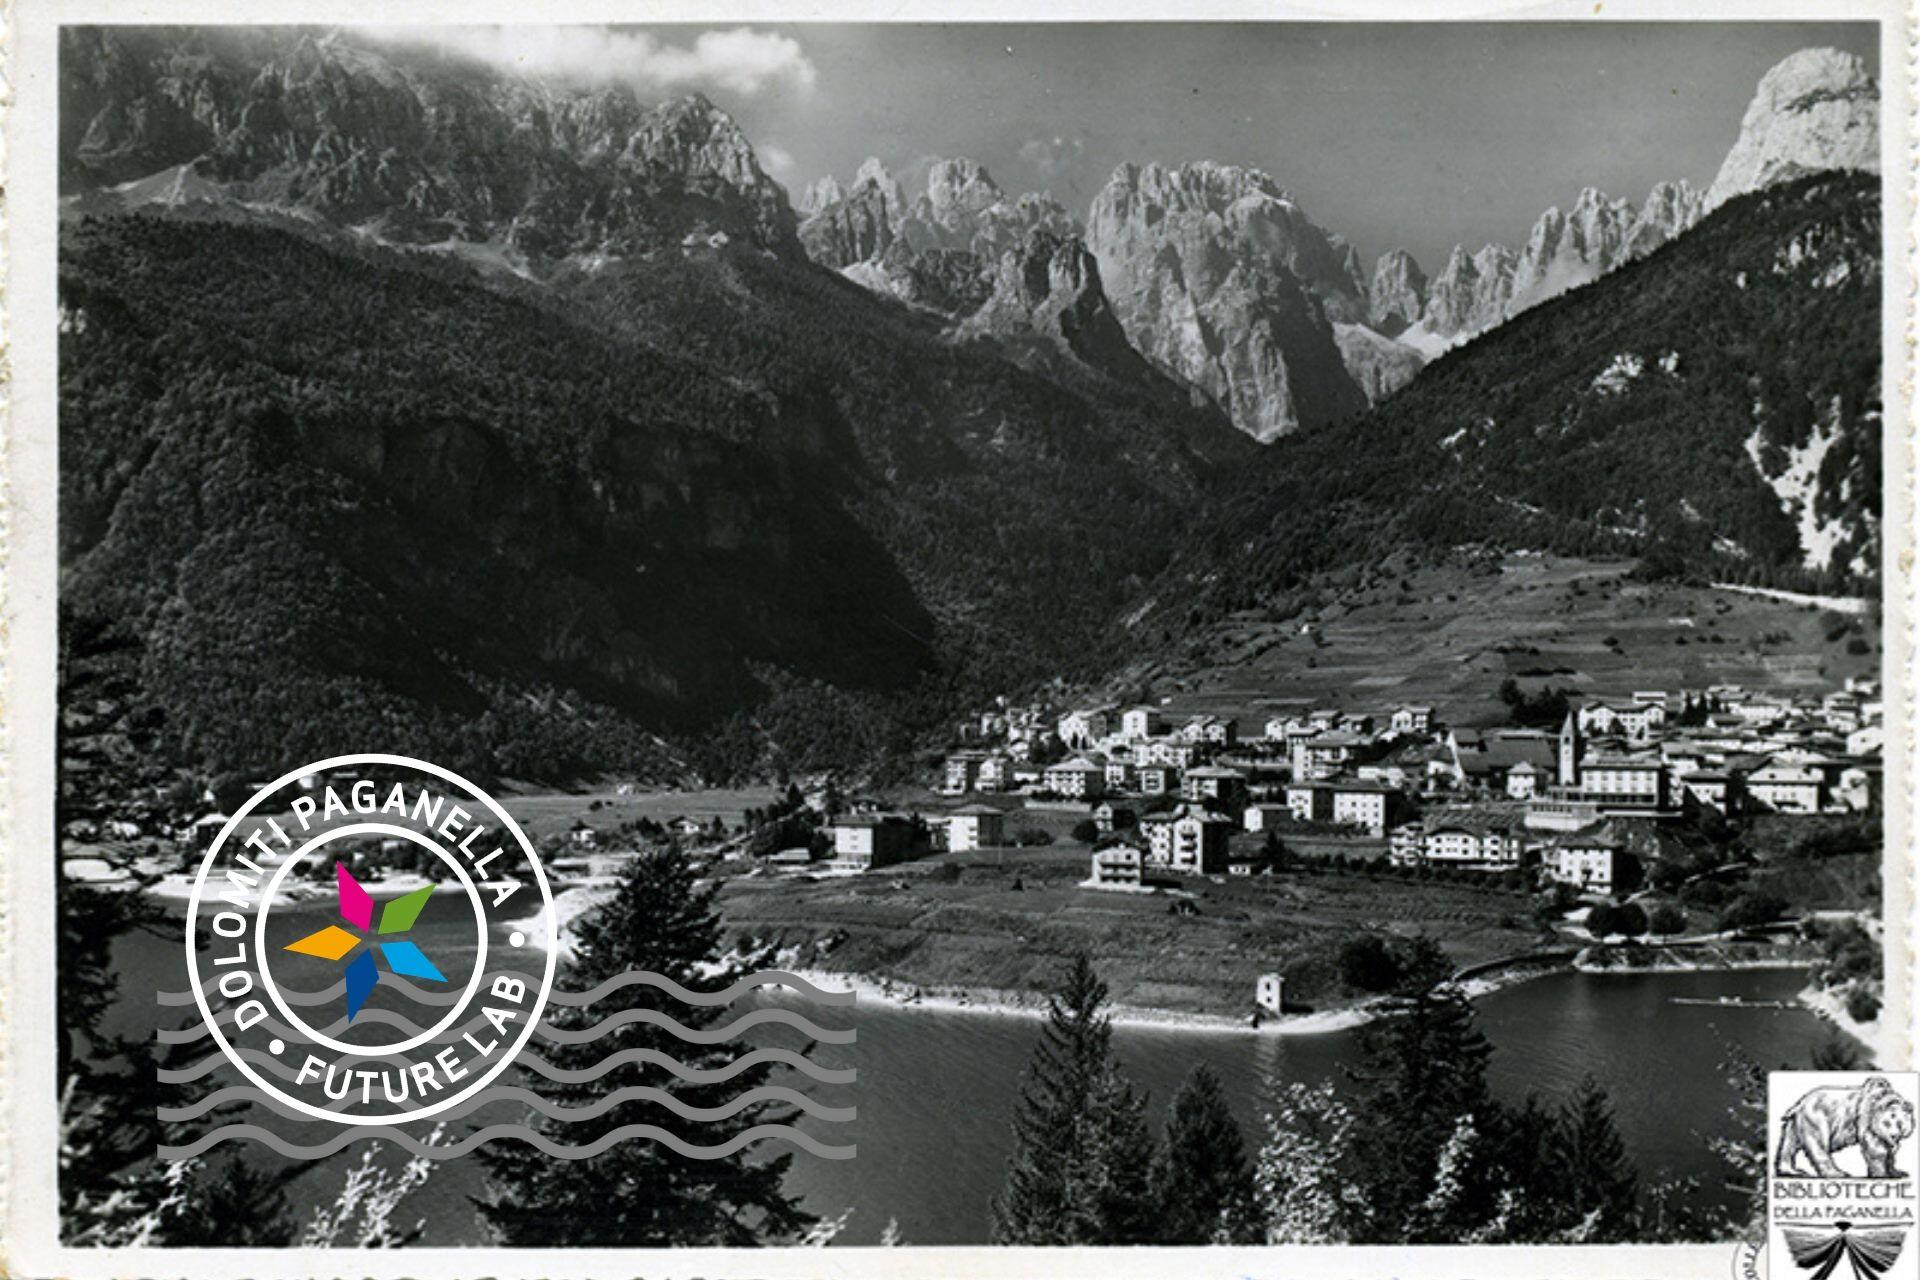 Once upon a time: 1967, when the Brenta was a 'volcano'